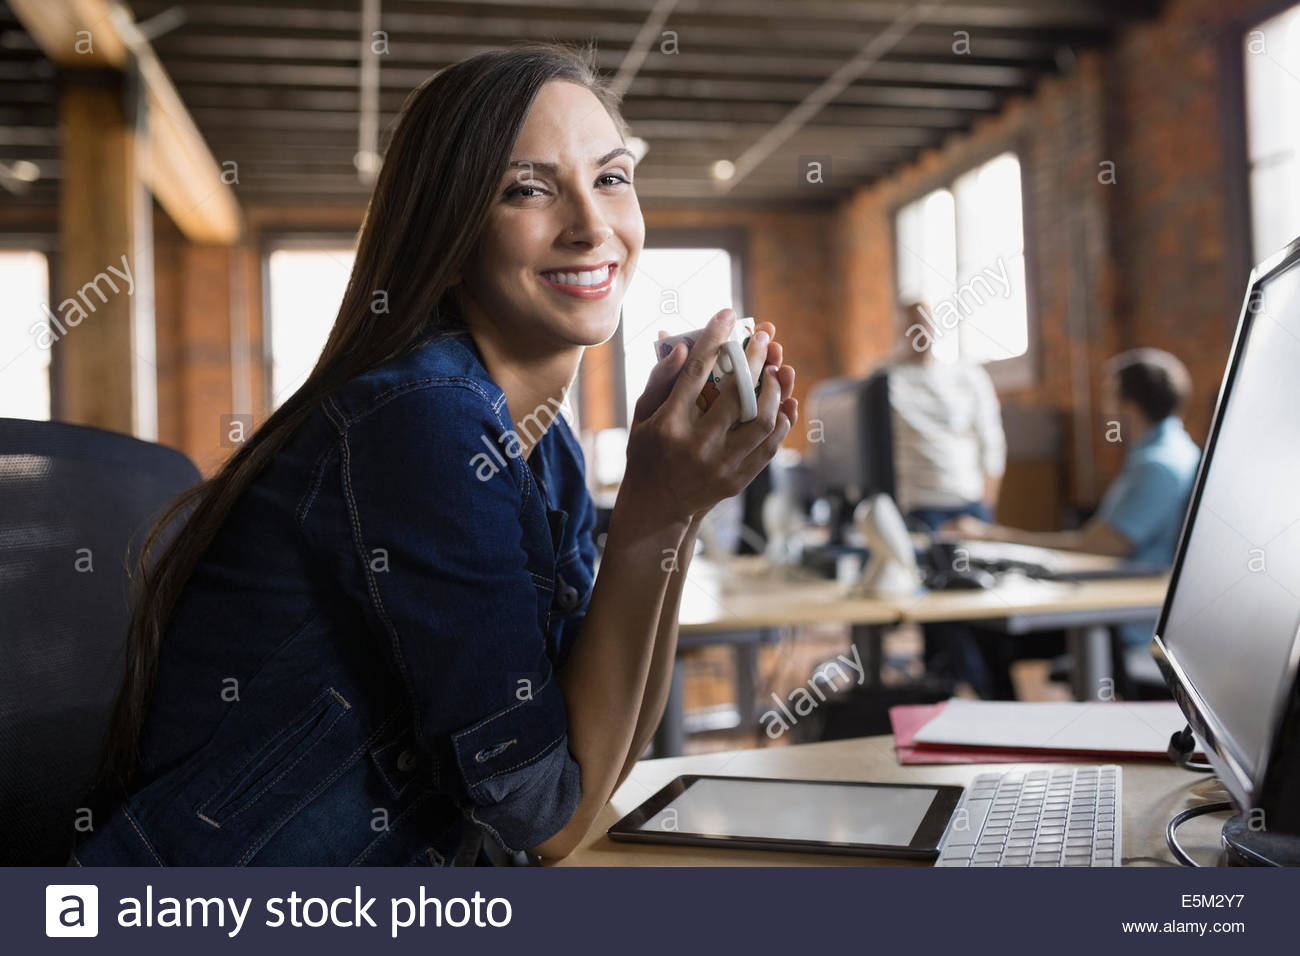 Portrait of smiling businesswoman drinking coffee in office - Stock Image